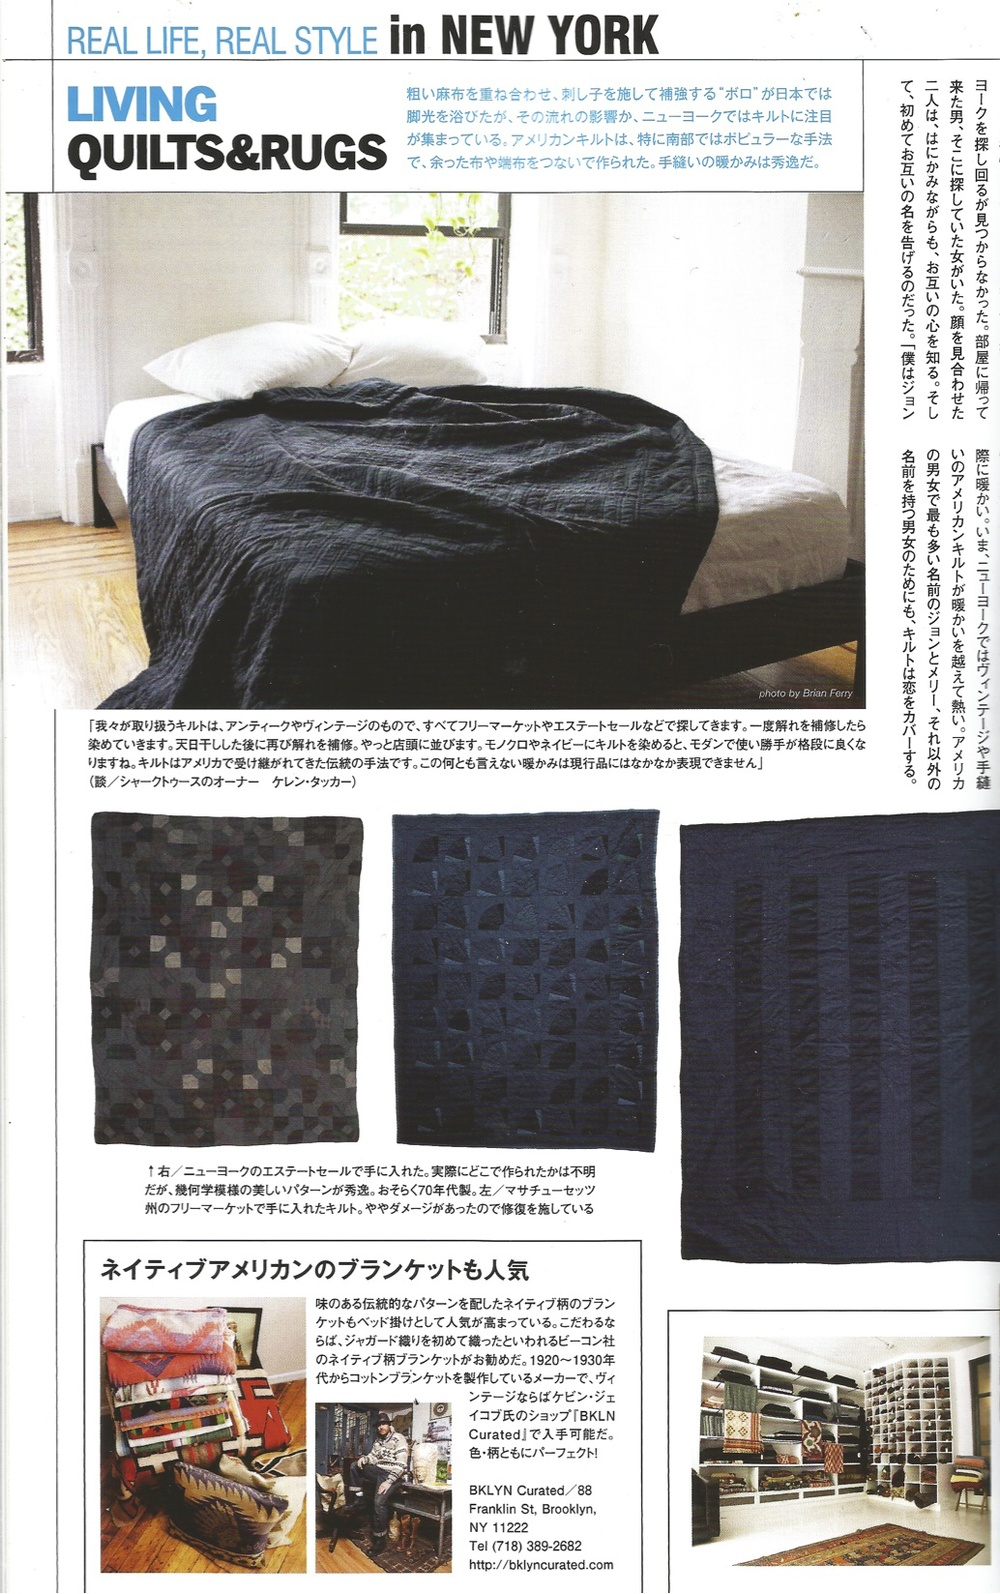 Sharktooth was featured in the NY Living section in the December issue of Free and Easy Magazine